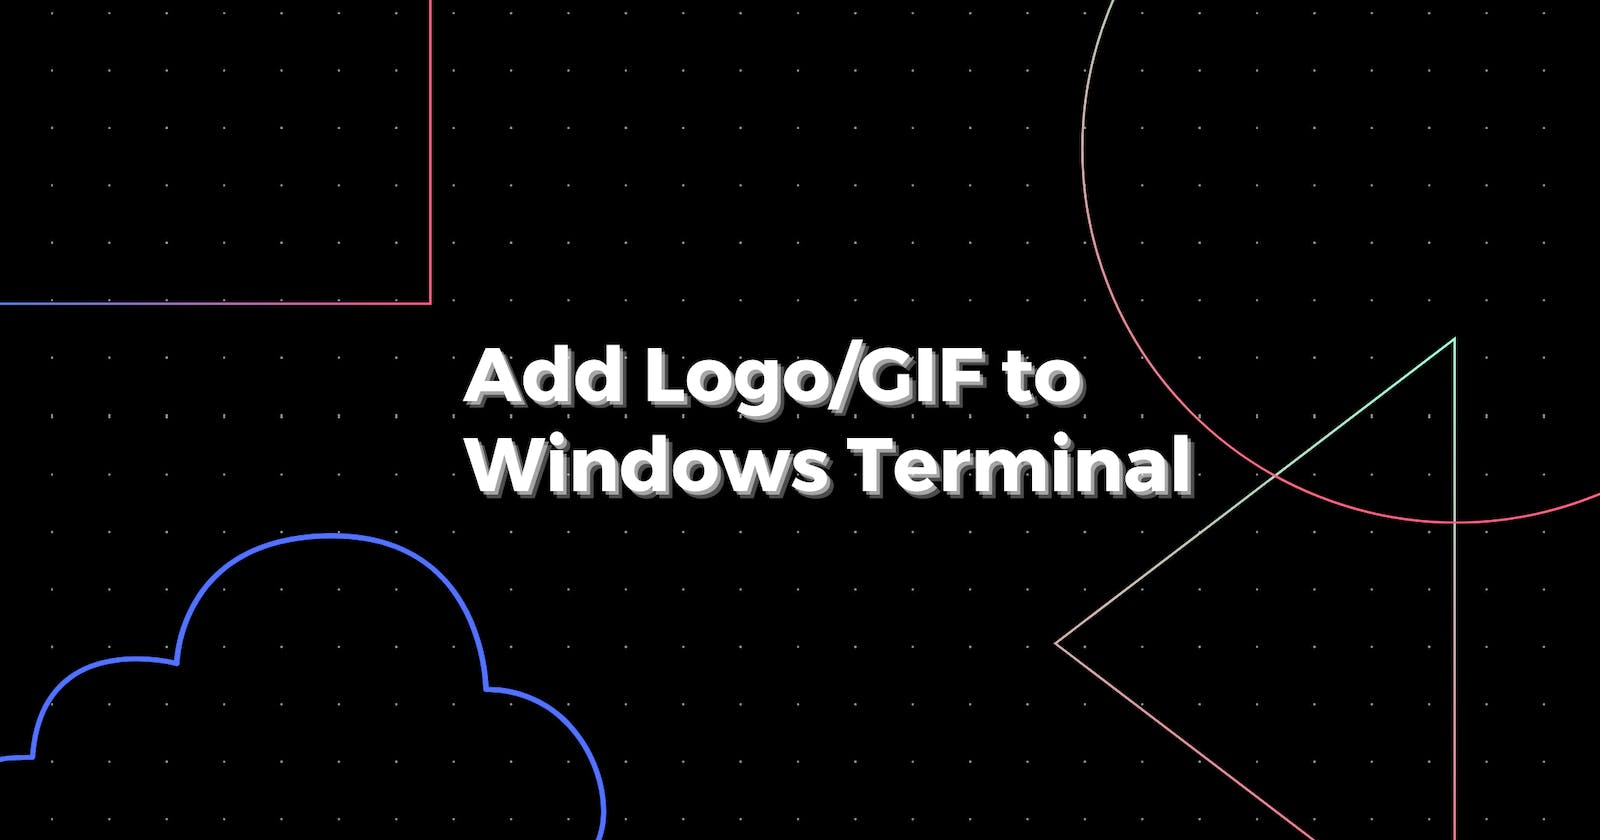 How to add a logo or GIF to Windows Terminal App